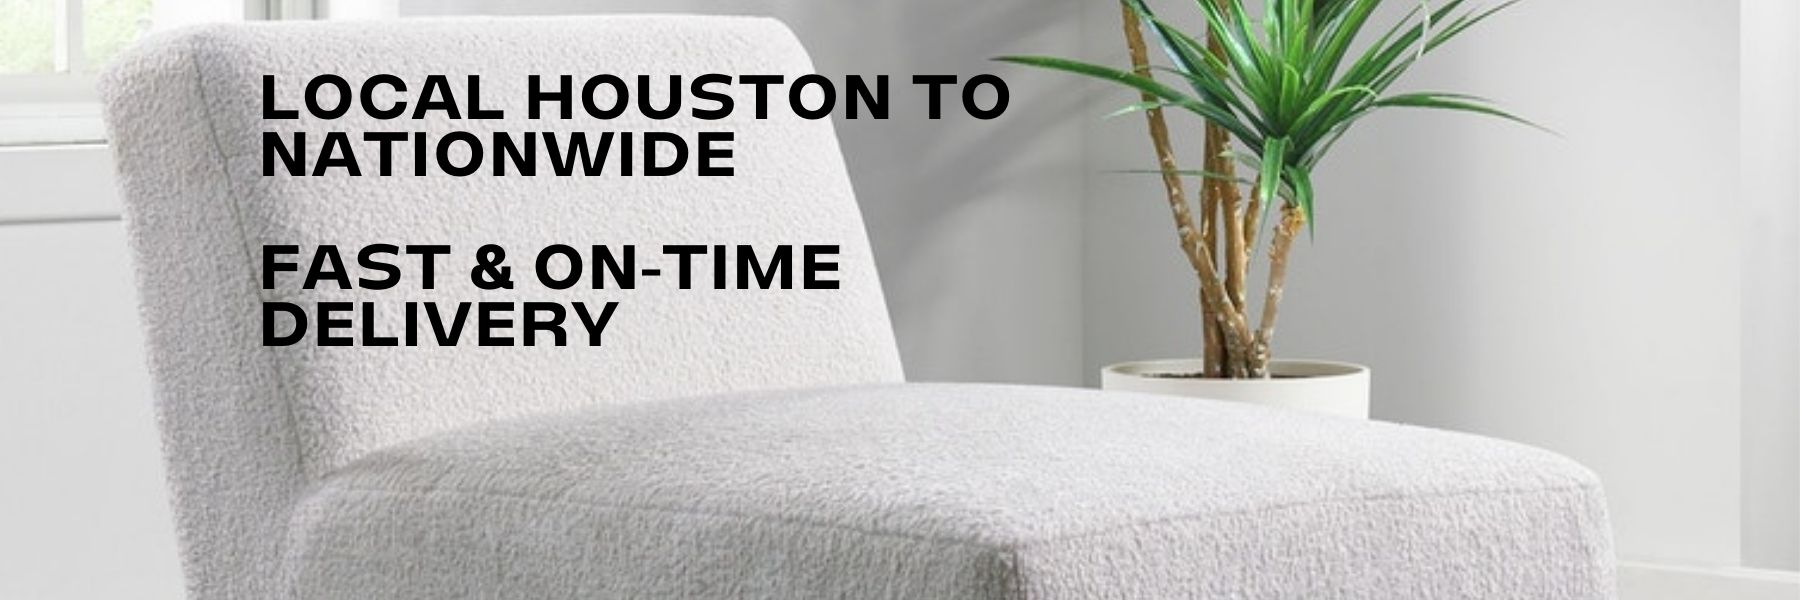 ASY Furniture local houston to nationwide furniture delivery